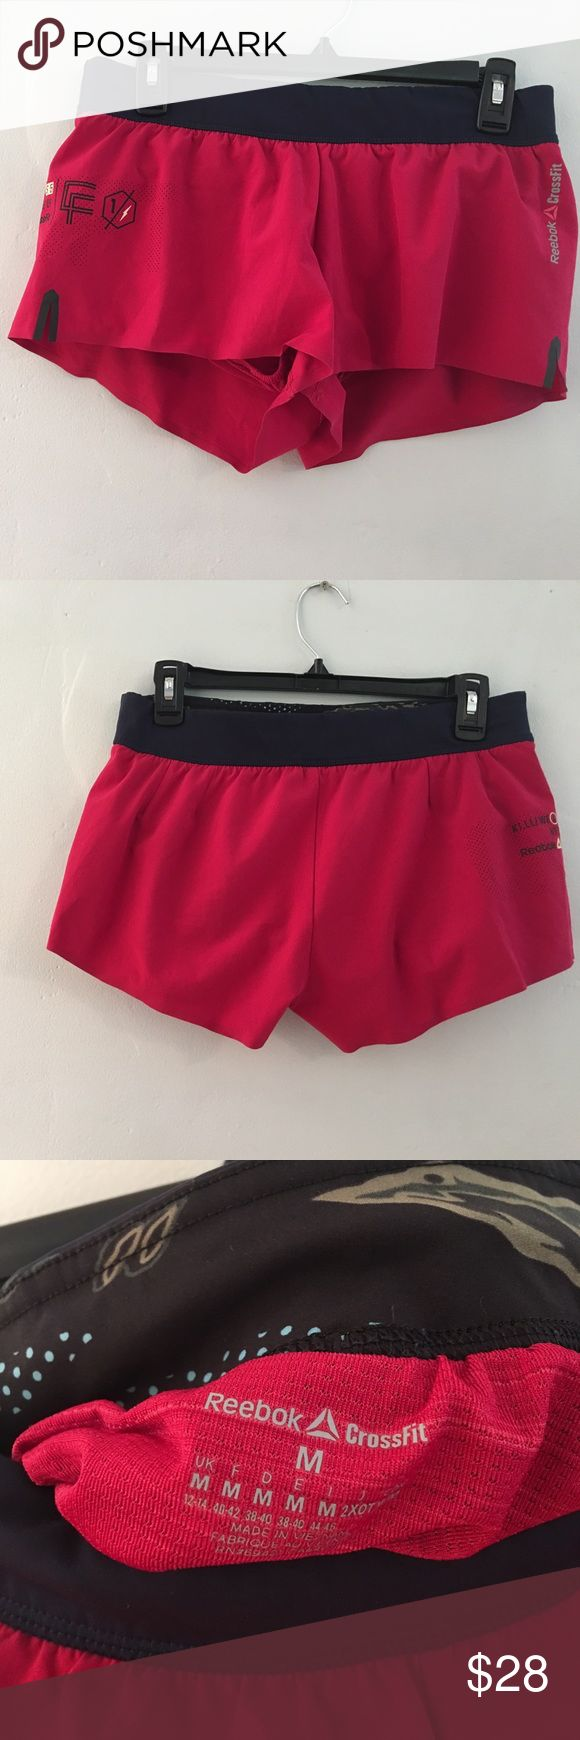 Reebok Crossfit Shorts Reebok Crossfit shorts, never worn but no tags! Reebok Shorts